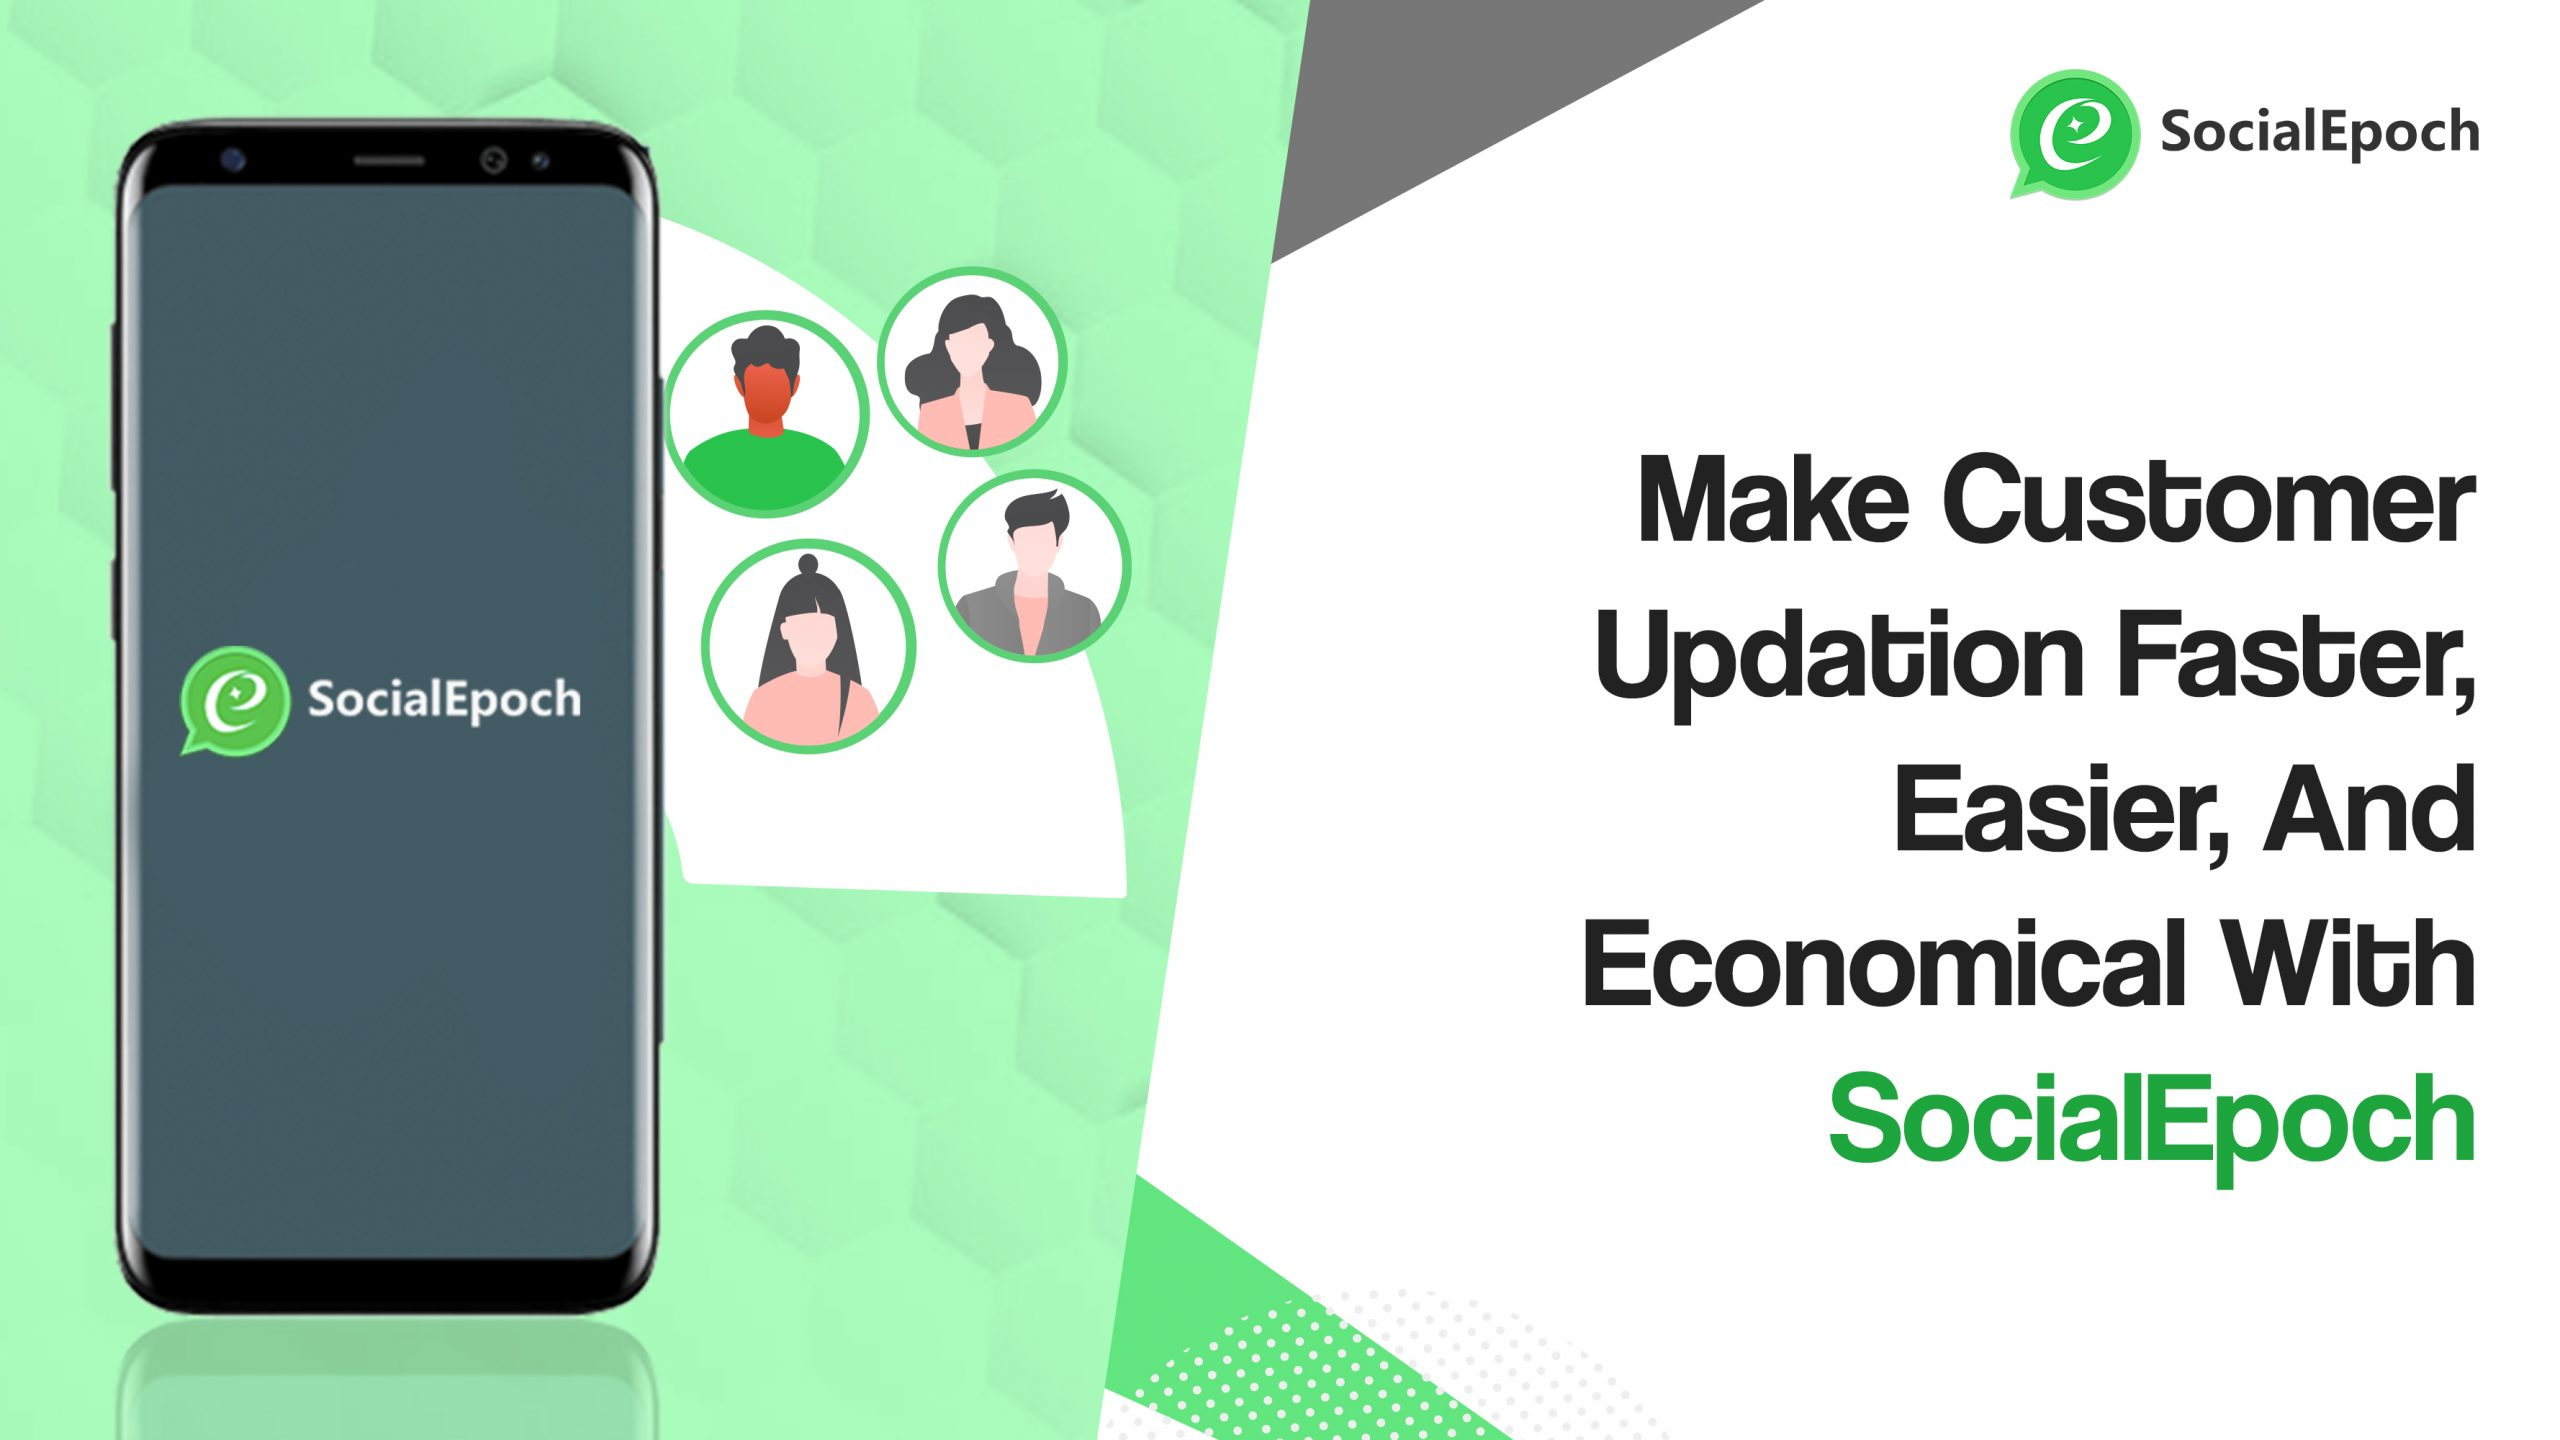 Make Customer Updation Faster, Easier, And Economical With SocialEpoch